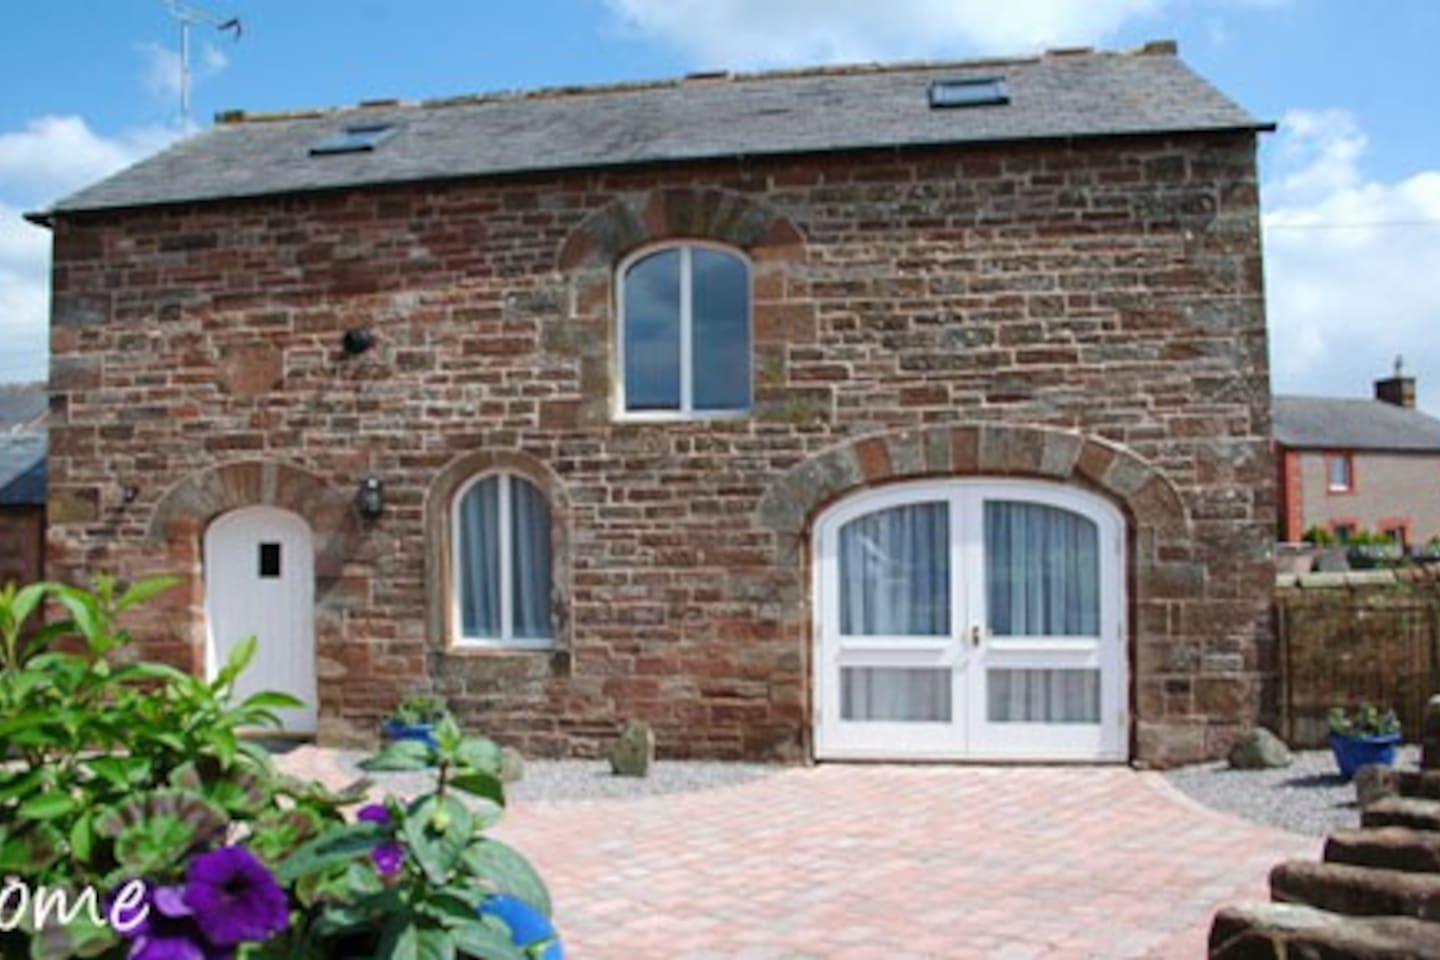 Journey into the heart of the Eden Valley, close to the Lake District and you will find The Old Coach House in the tranquil hamlet of Winskill, Cumbria.